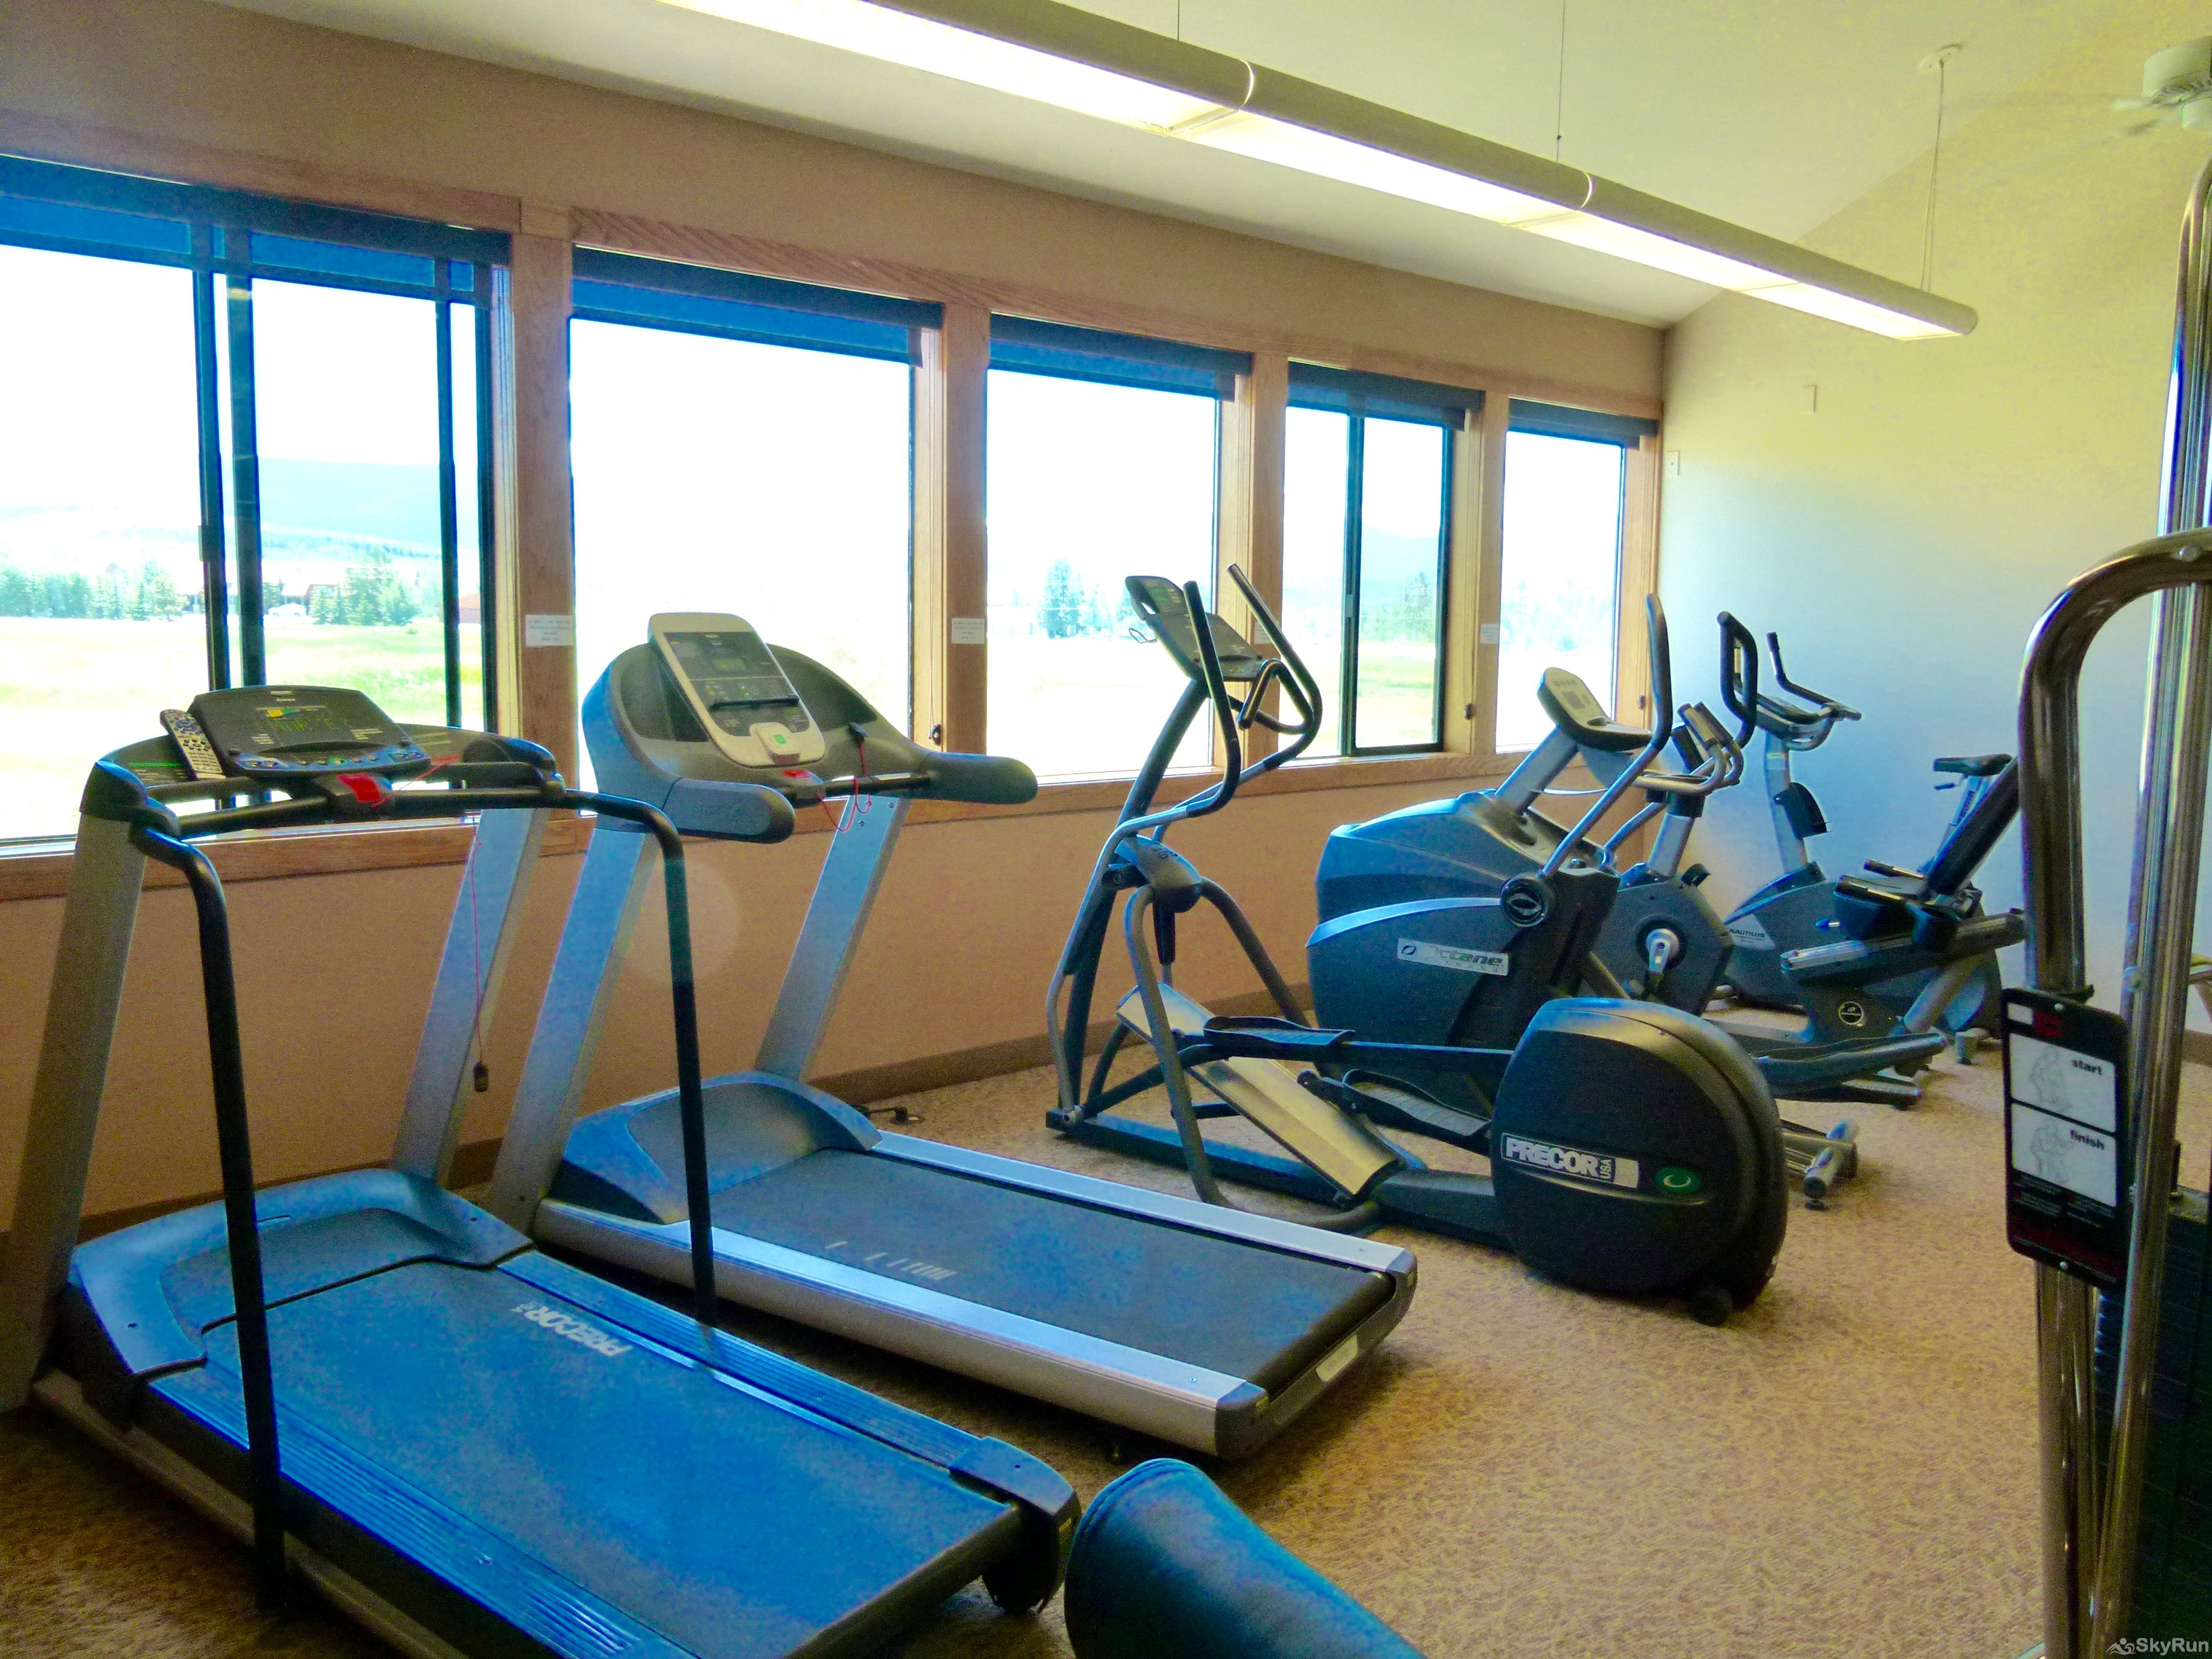 Meadow Ridge Court 4 Unit 5 Workout facility and Basketball Court